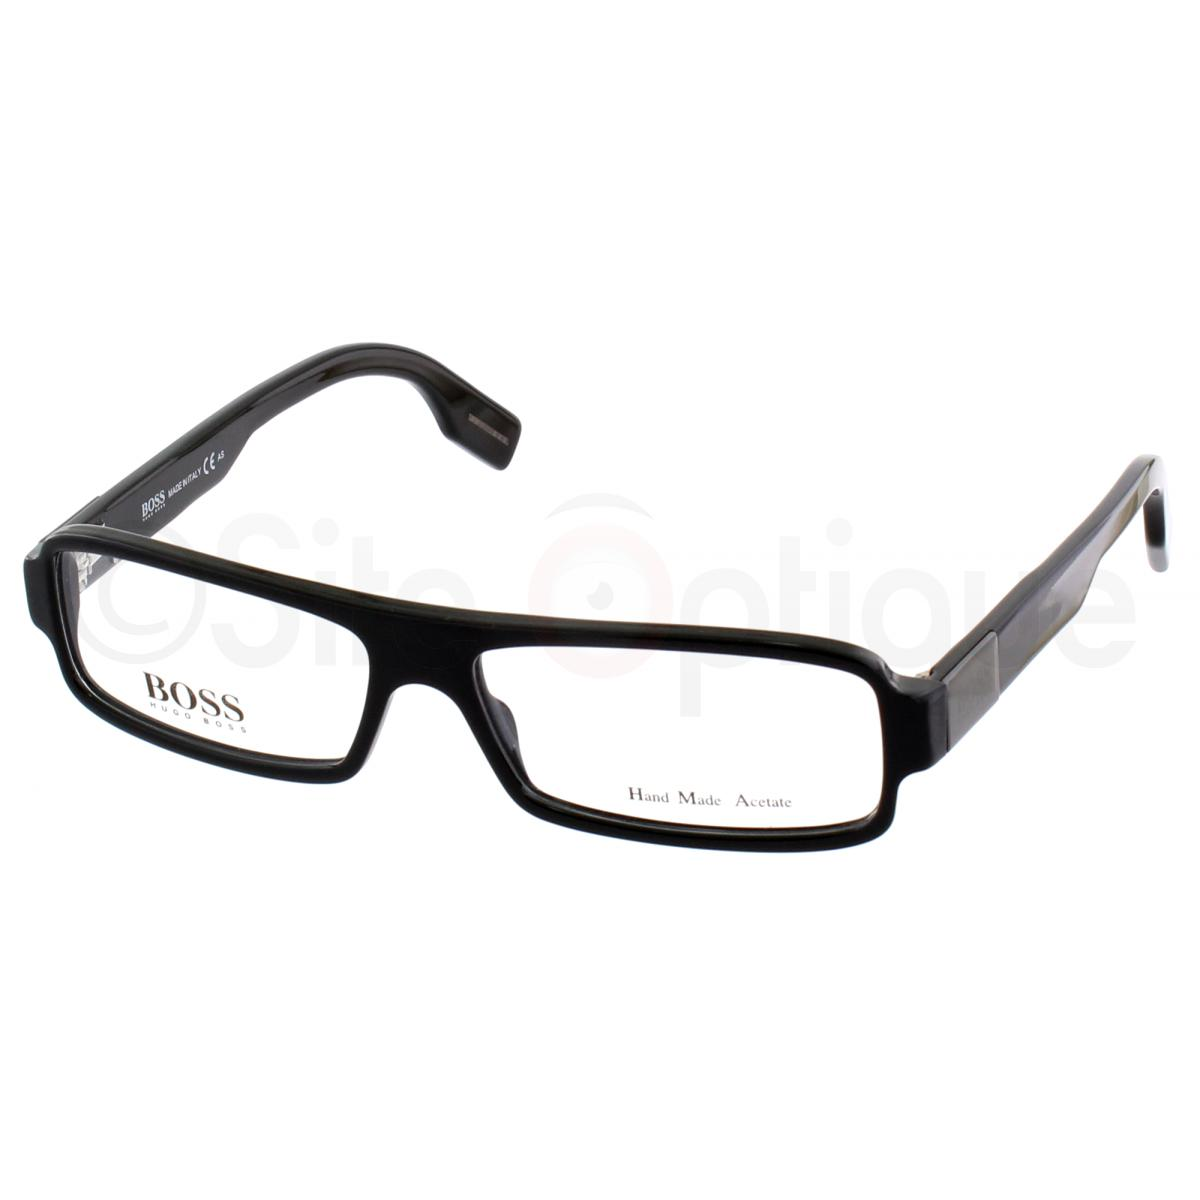 a4e5c3a419b4d HUGO BOSS - BOSS 0375 – Site optique